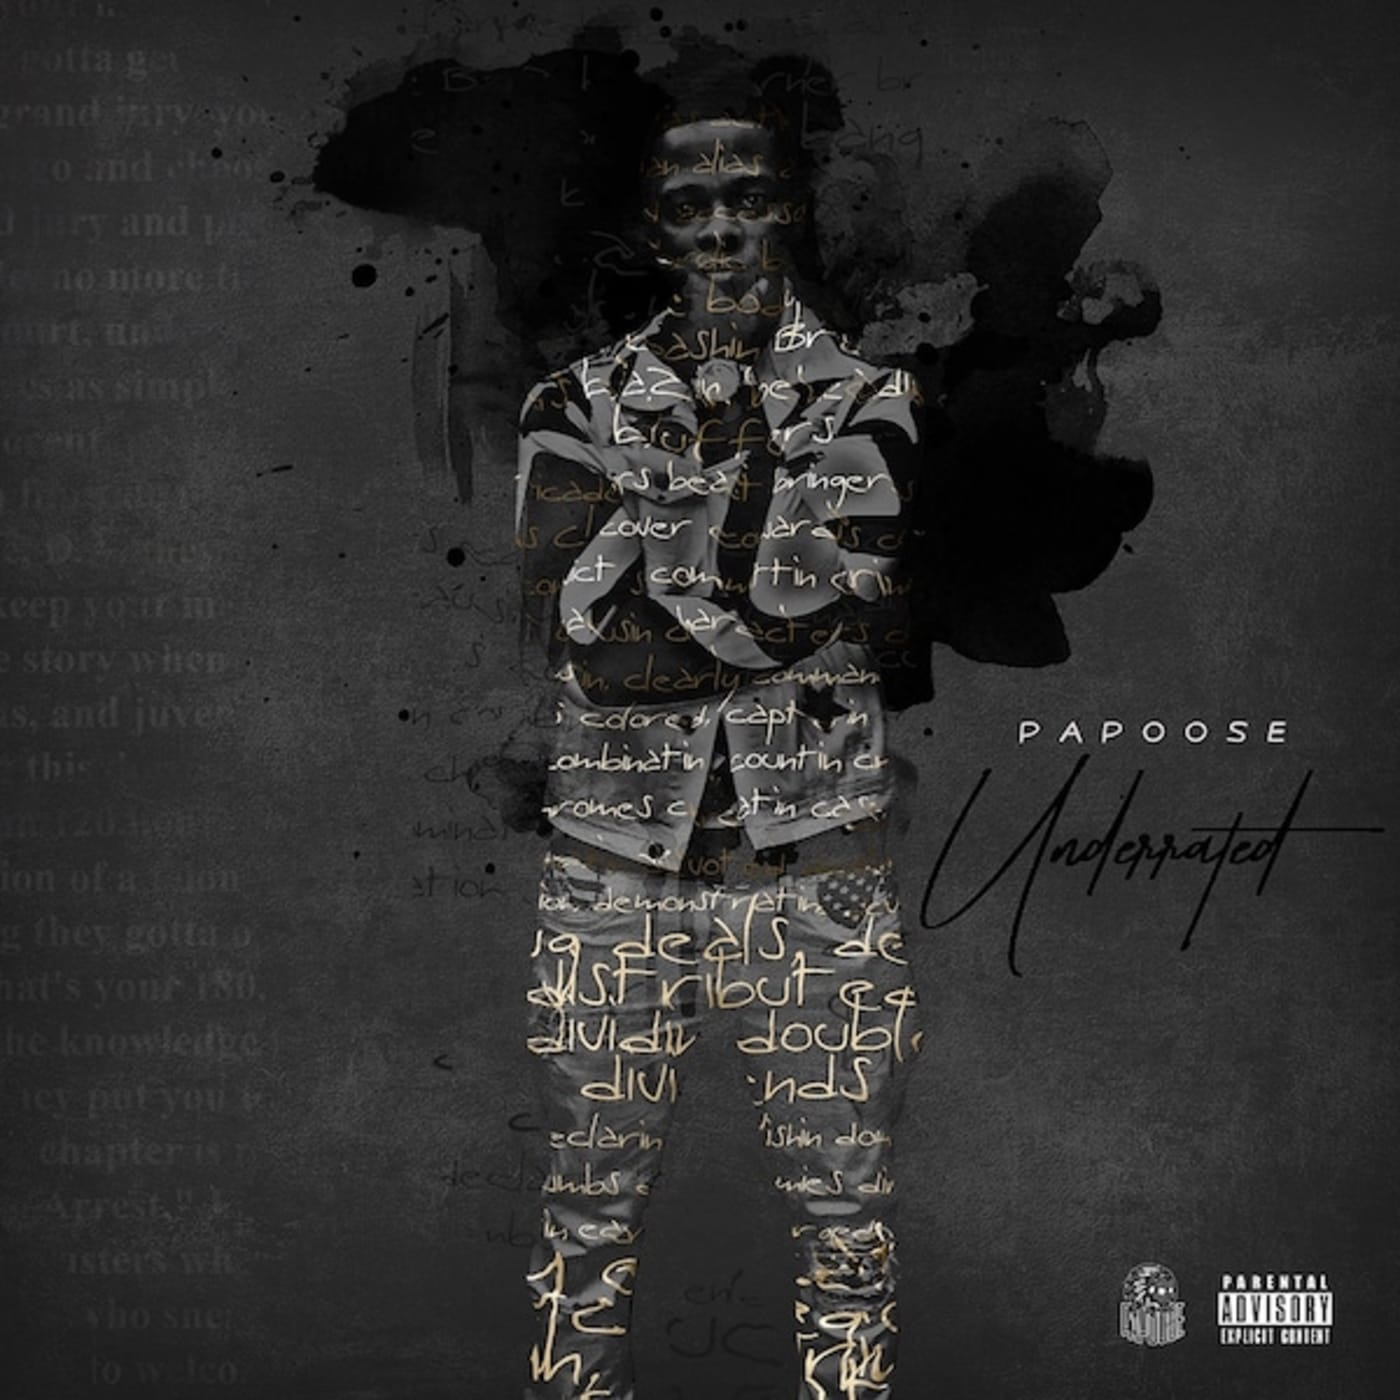 Papoose Numerical Slaughter